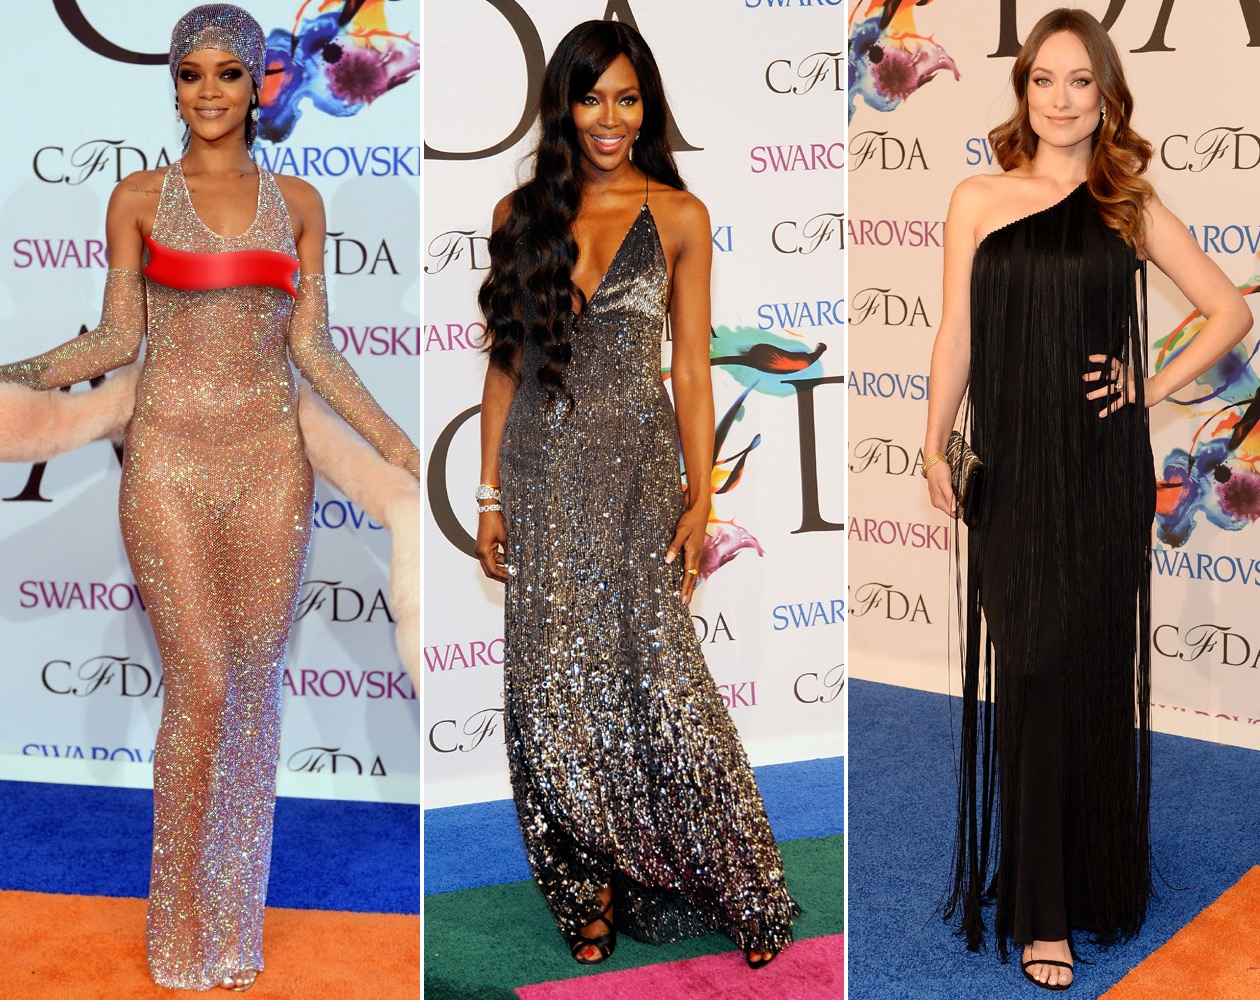 Glam Slam Risque Rihanna Rules The Cfda Red Carpet Access Online